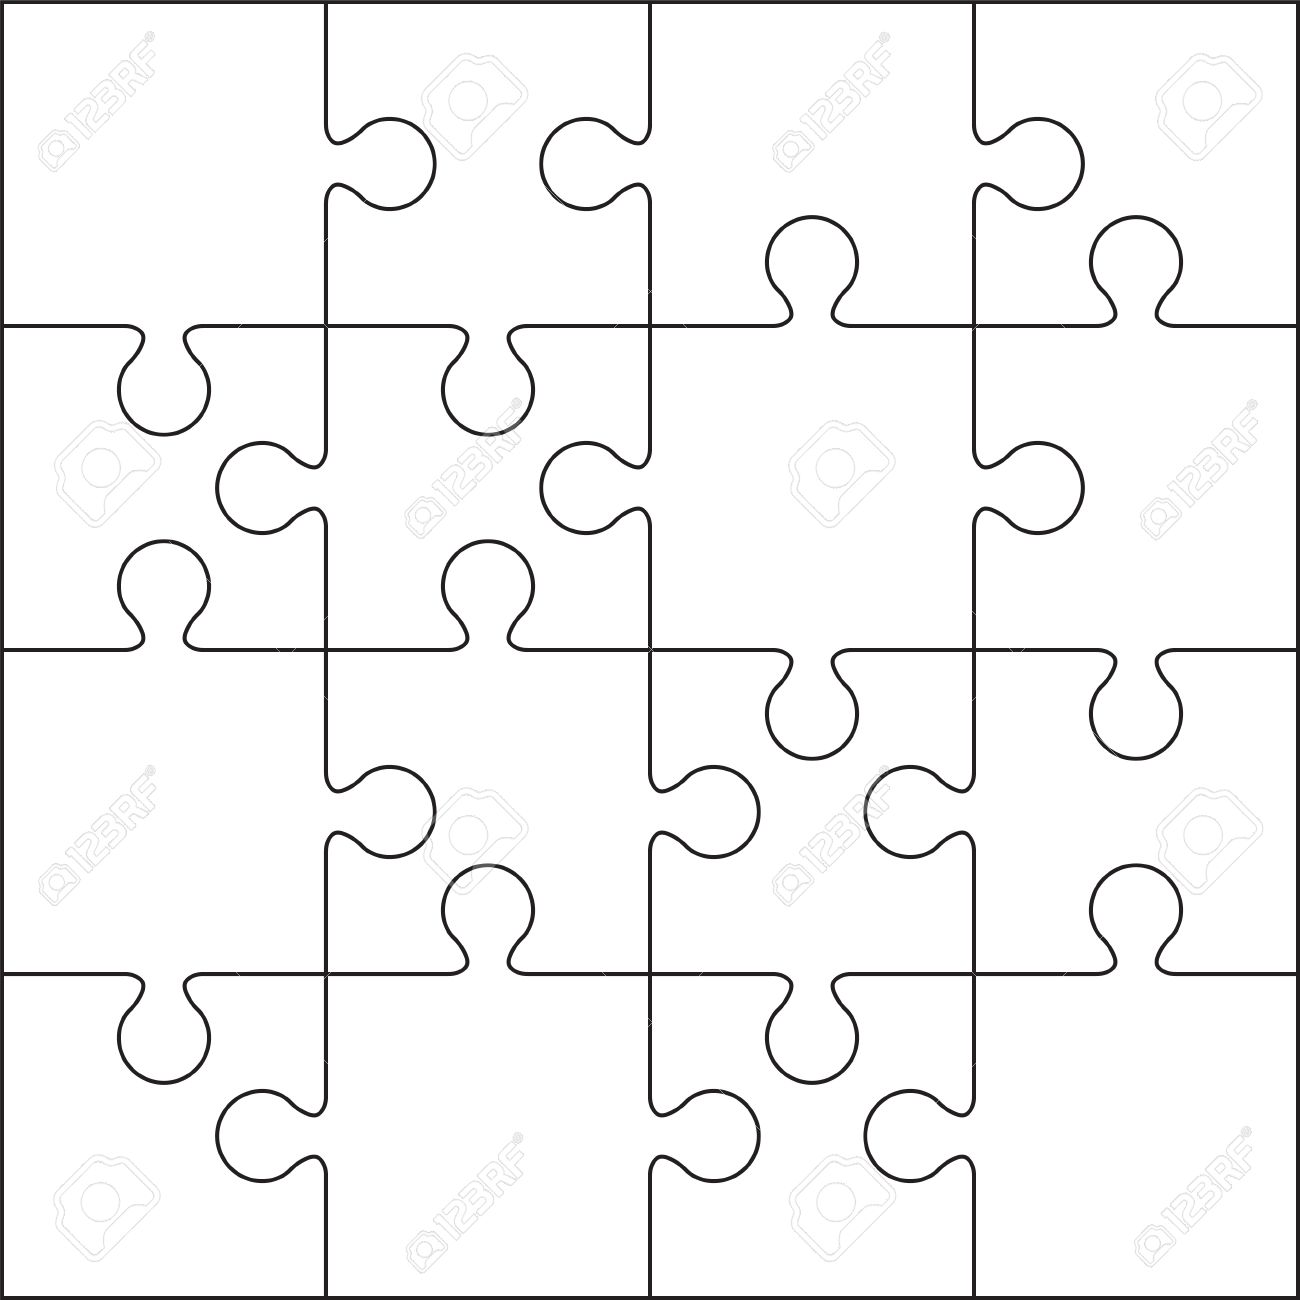 16 Jigsaw Puzzle Blank Template Or Cutting Guidelines Royalty Free